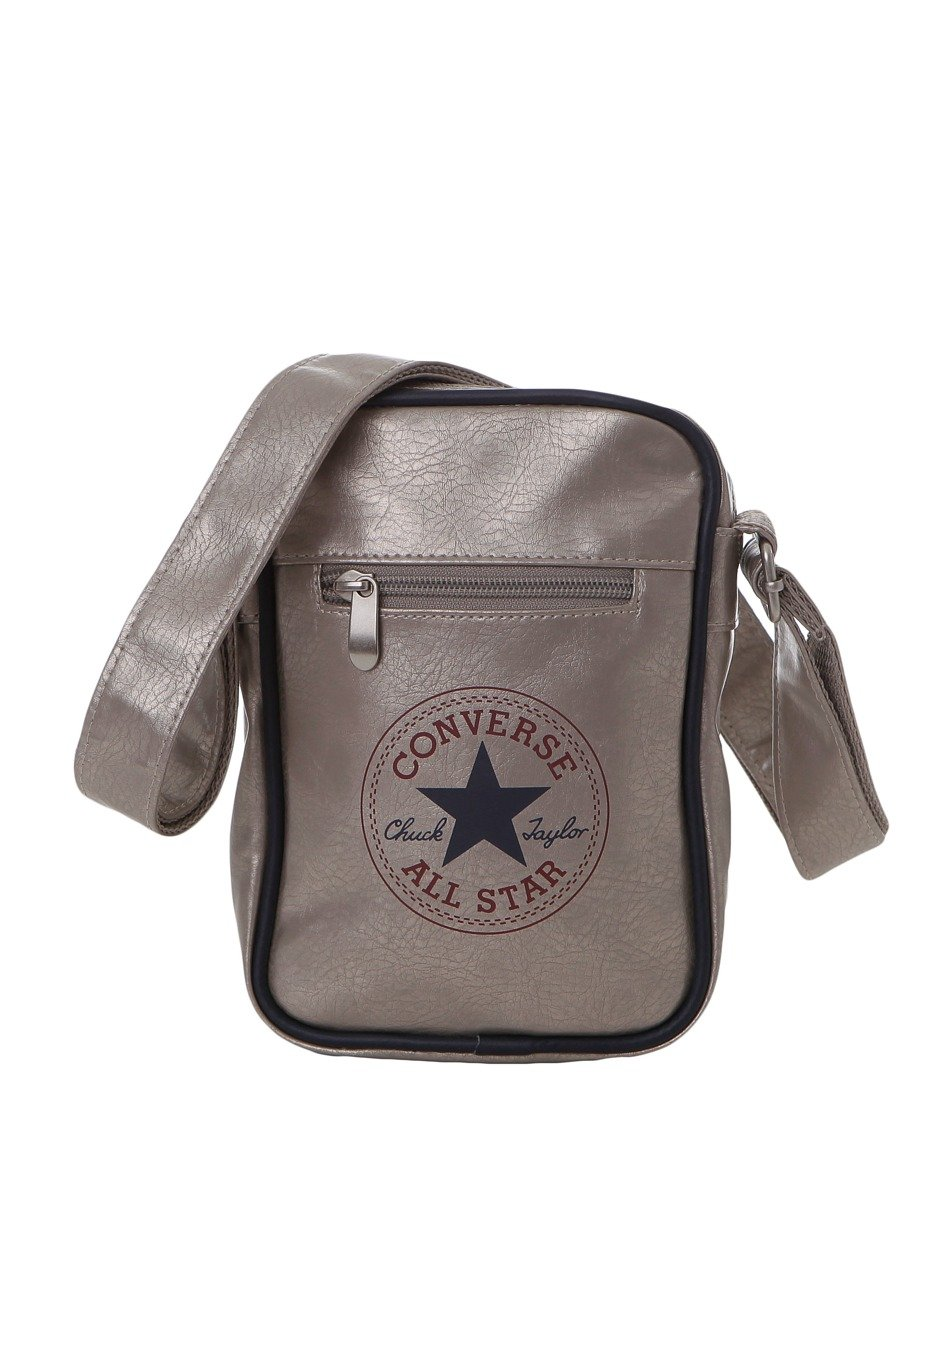 2fe43b5e6b4d Converse - Retro Antique Silver - Bag - Impericon.com Worldwide